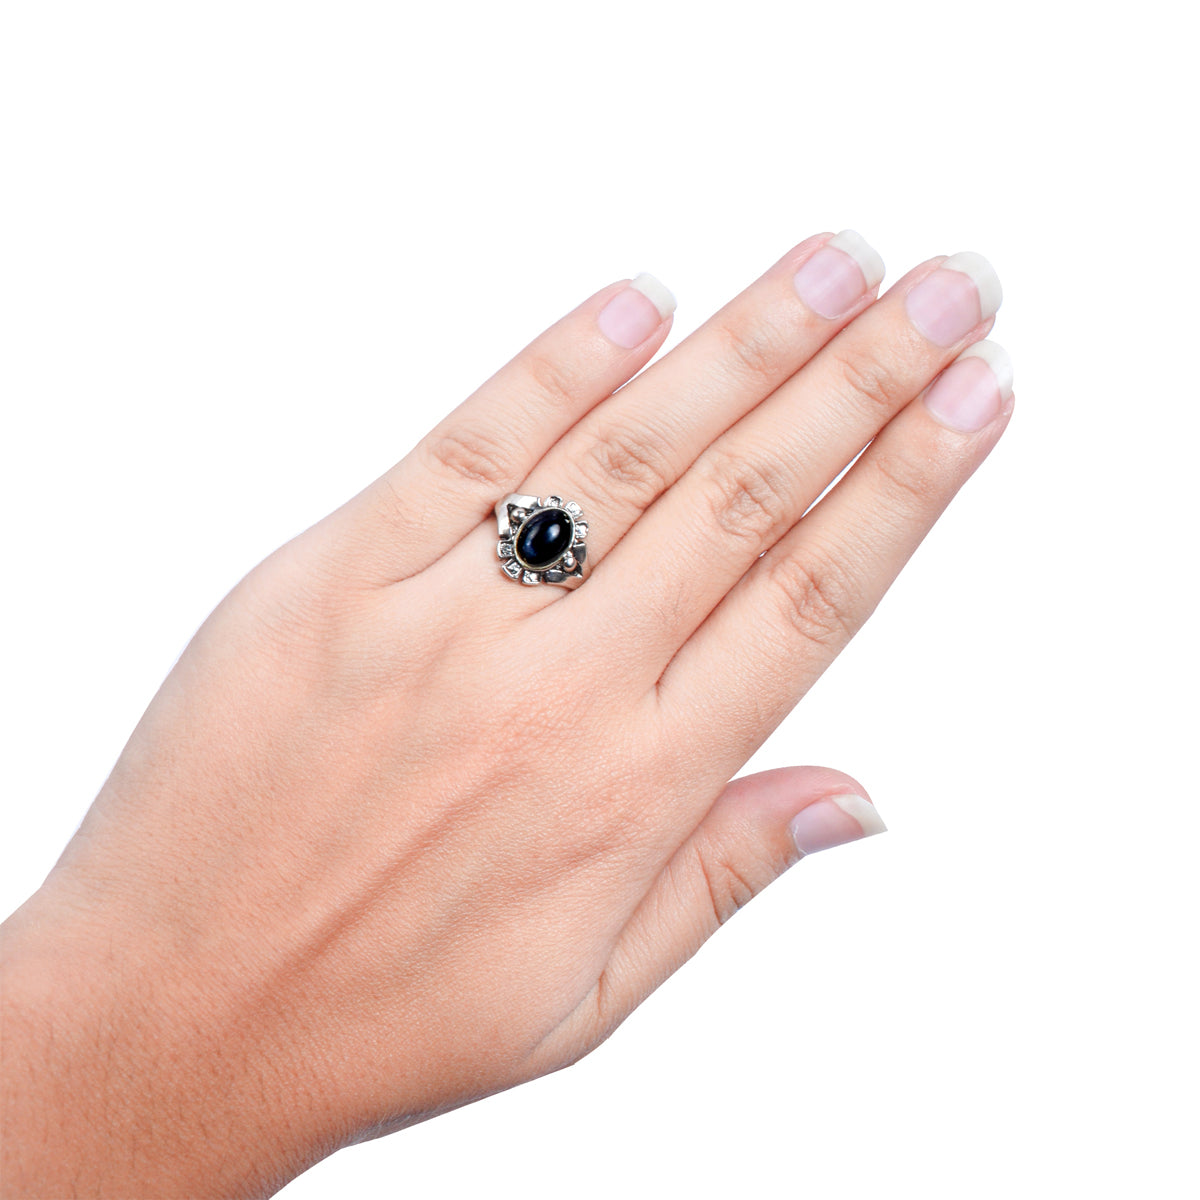 Stylish Rings Silver With Black Stone -JW078